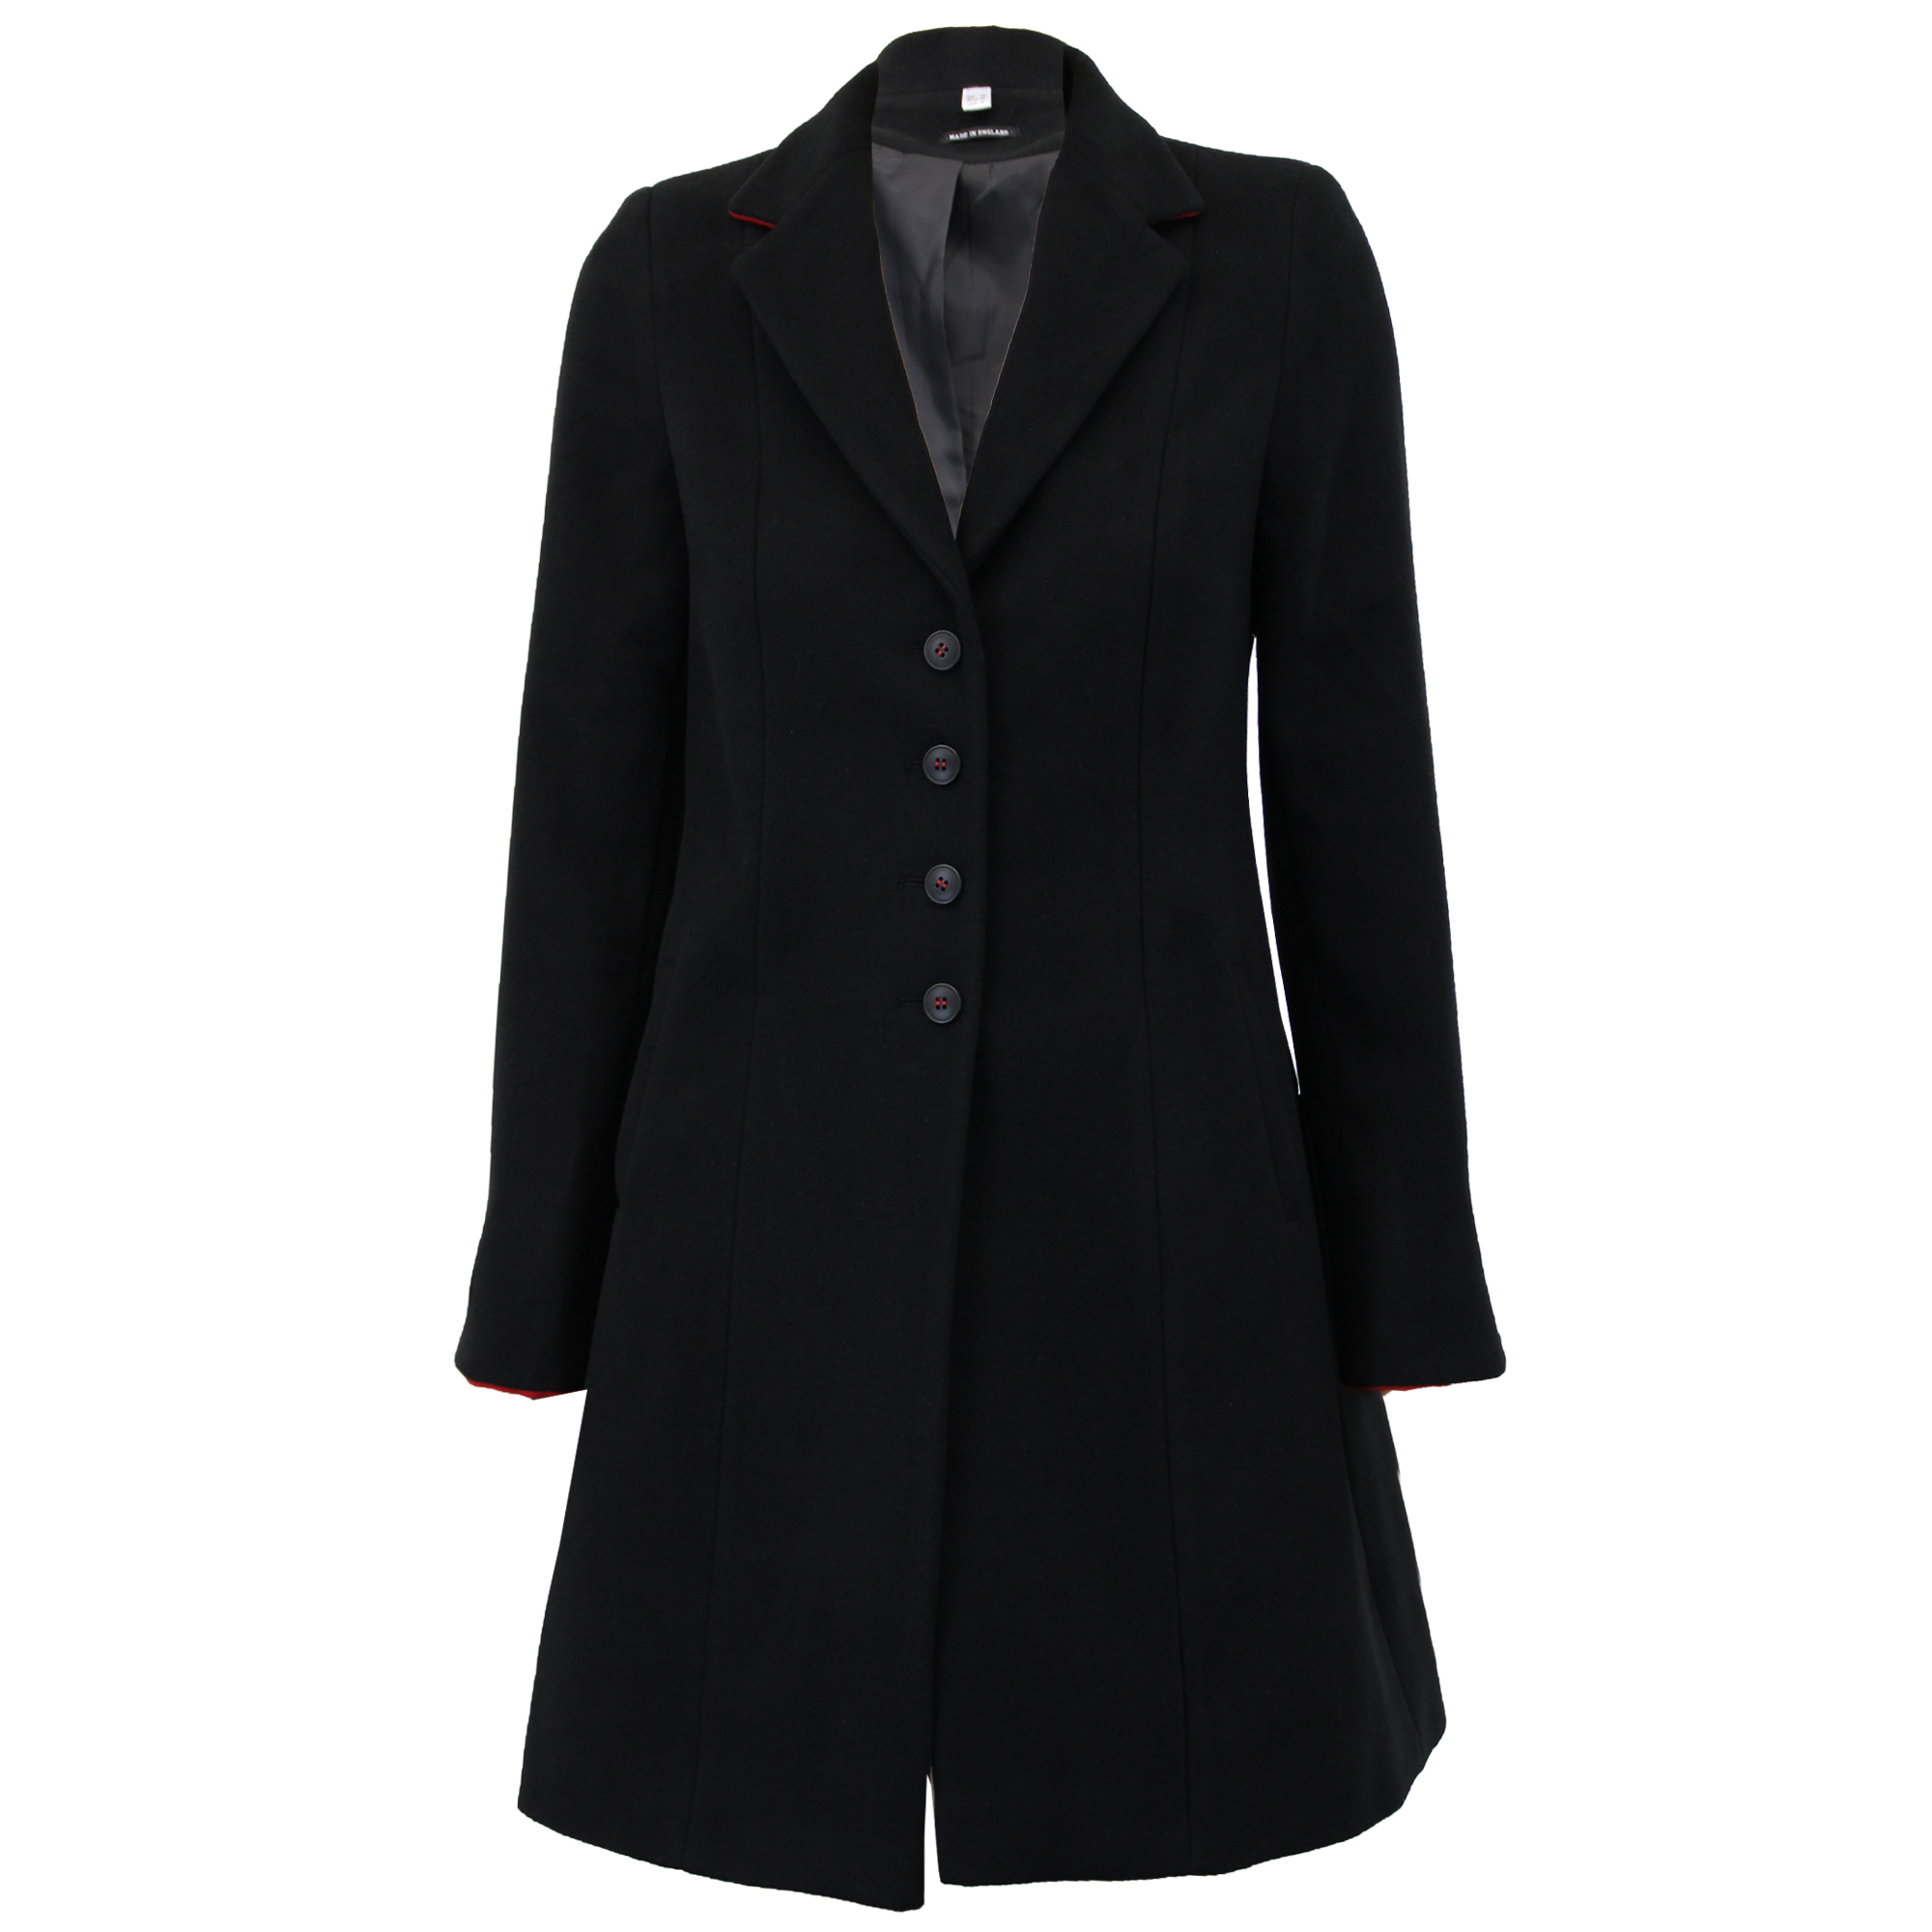 Wrap up in luxurious women's % wool coats. Cosy capes, draped duster jackets and soft coatigans add a relaxed finish to your weekend outfits. When you need to look sharp, a double-breasted design or tailored blazer in neutral hues makes a smart top layer.